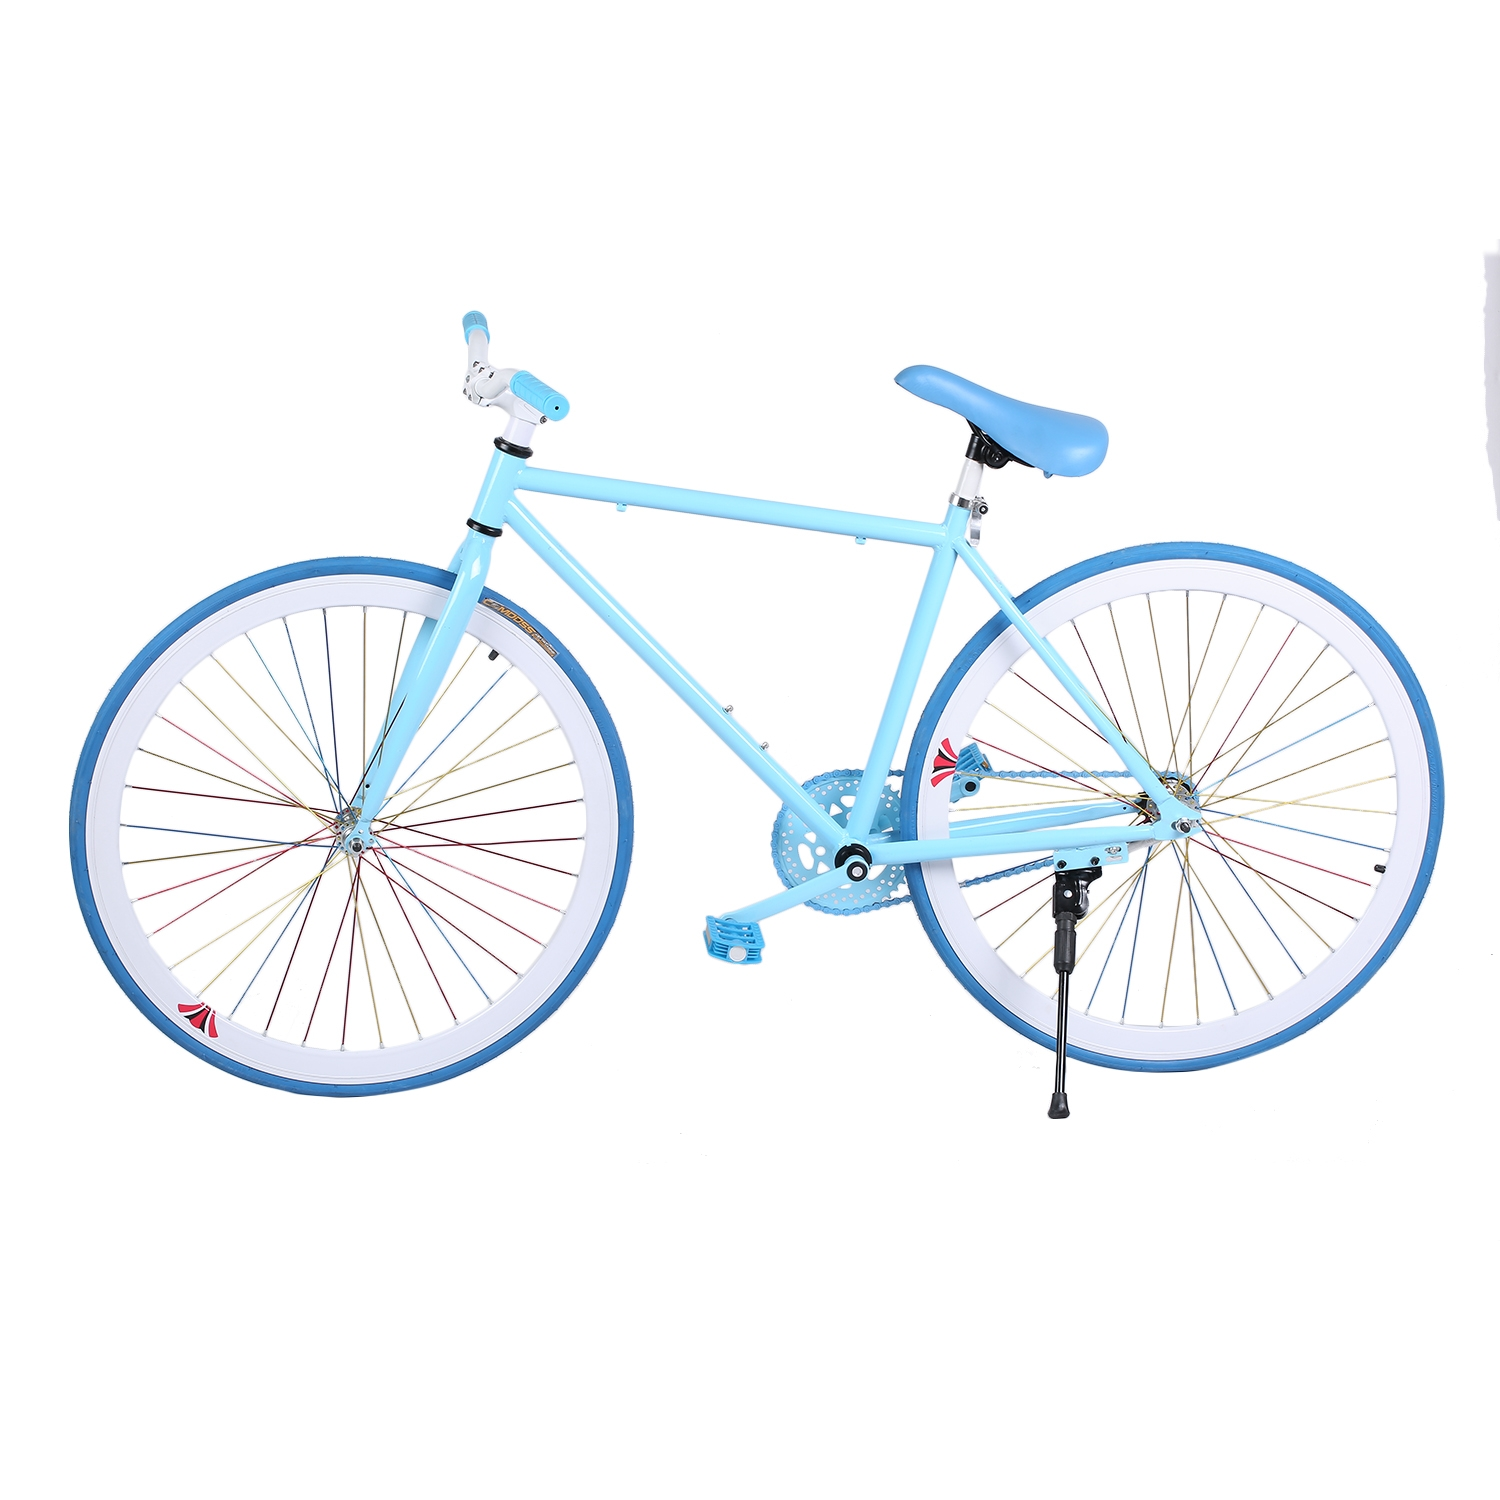 CNMODLE 26 Inch Reverse Brake Bicycle Outdoor Sports Exercise Bike Carbon Steel Frame Complete Cycling Road Bike